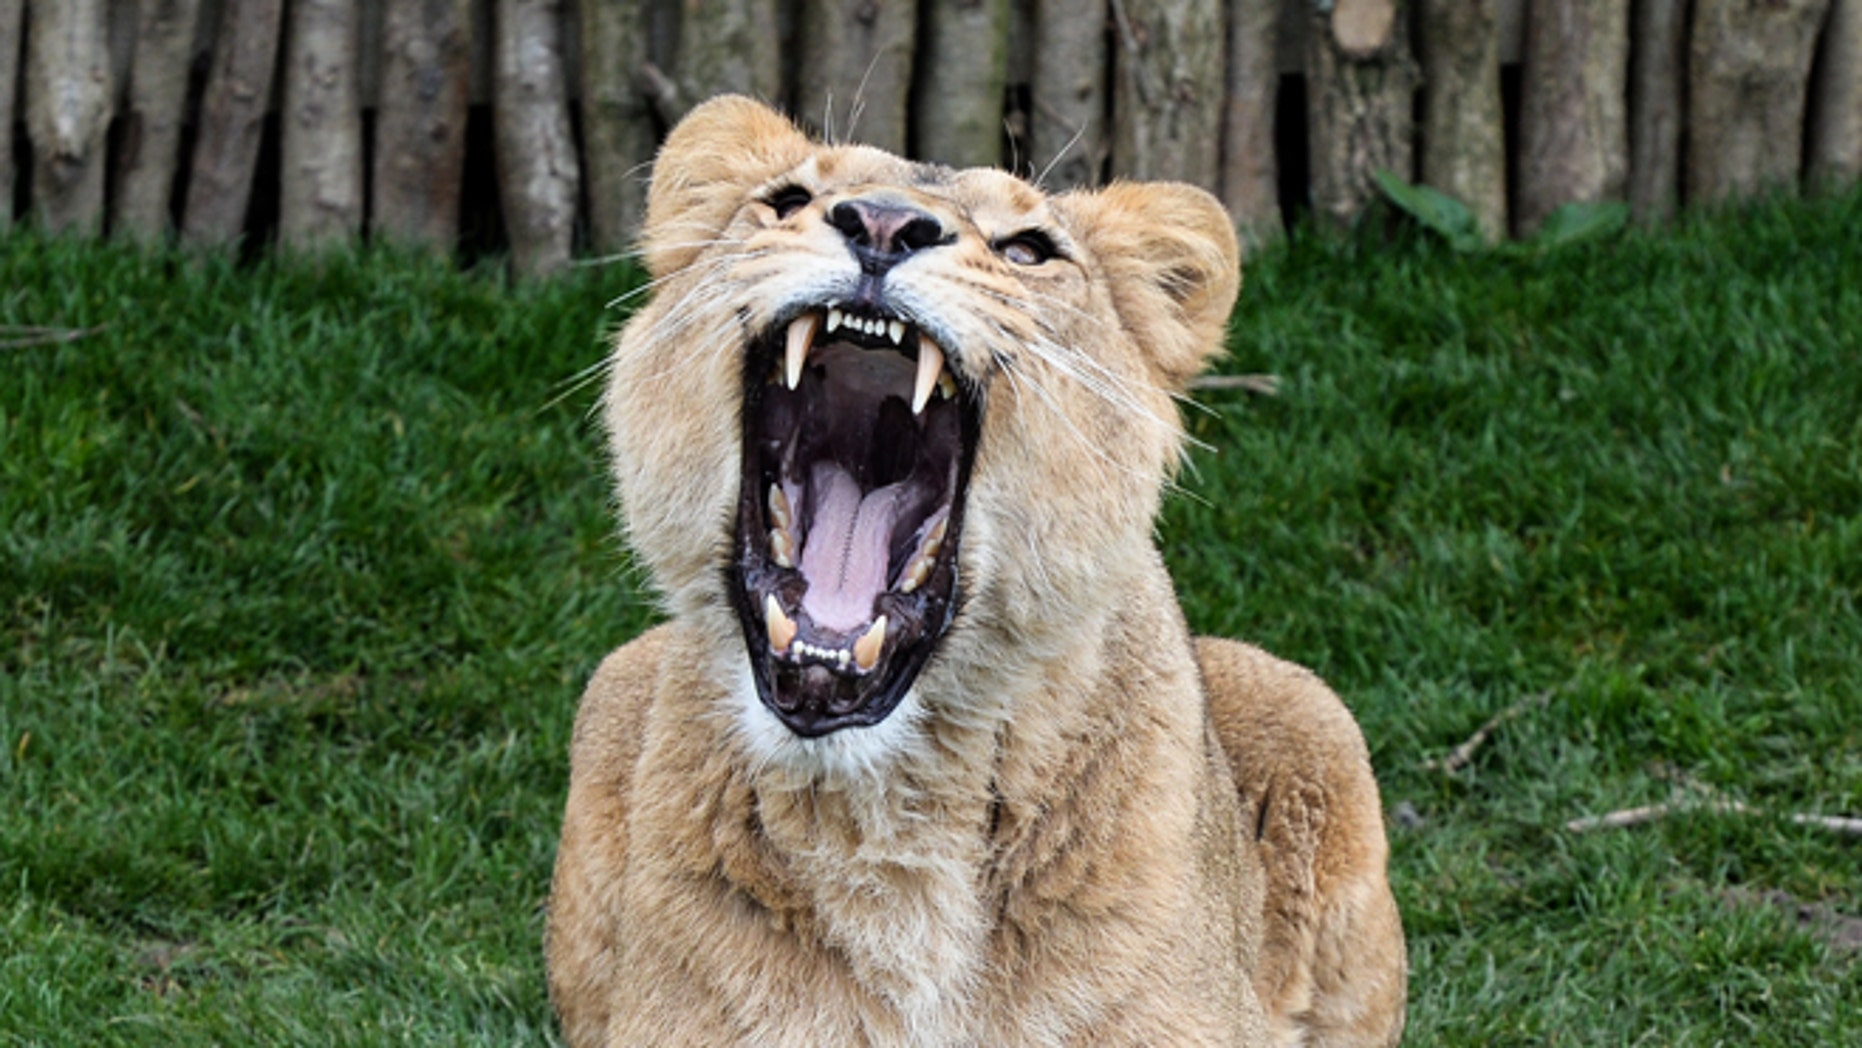 LONDON, ENGLAND - MARCH 16:  Female Asiatic lion Indi, 4, roars as she is fed at the new lion enclosure 'Land Of The Lions' at London Zoo on March 16, 2016 in London, England. The enclosure will be opened by the Queen and is modelled on the village Sasan Gir in Gujarat, India, where lions and villagers live side by side. It is five times the size of the previous enclosure and facilitates for a breeding group of endangered Asiatic lions, of which only several hundred remain in the wild.  (Photo by Chris Ratcliffe/Getty Images)